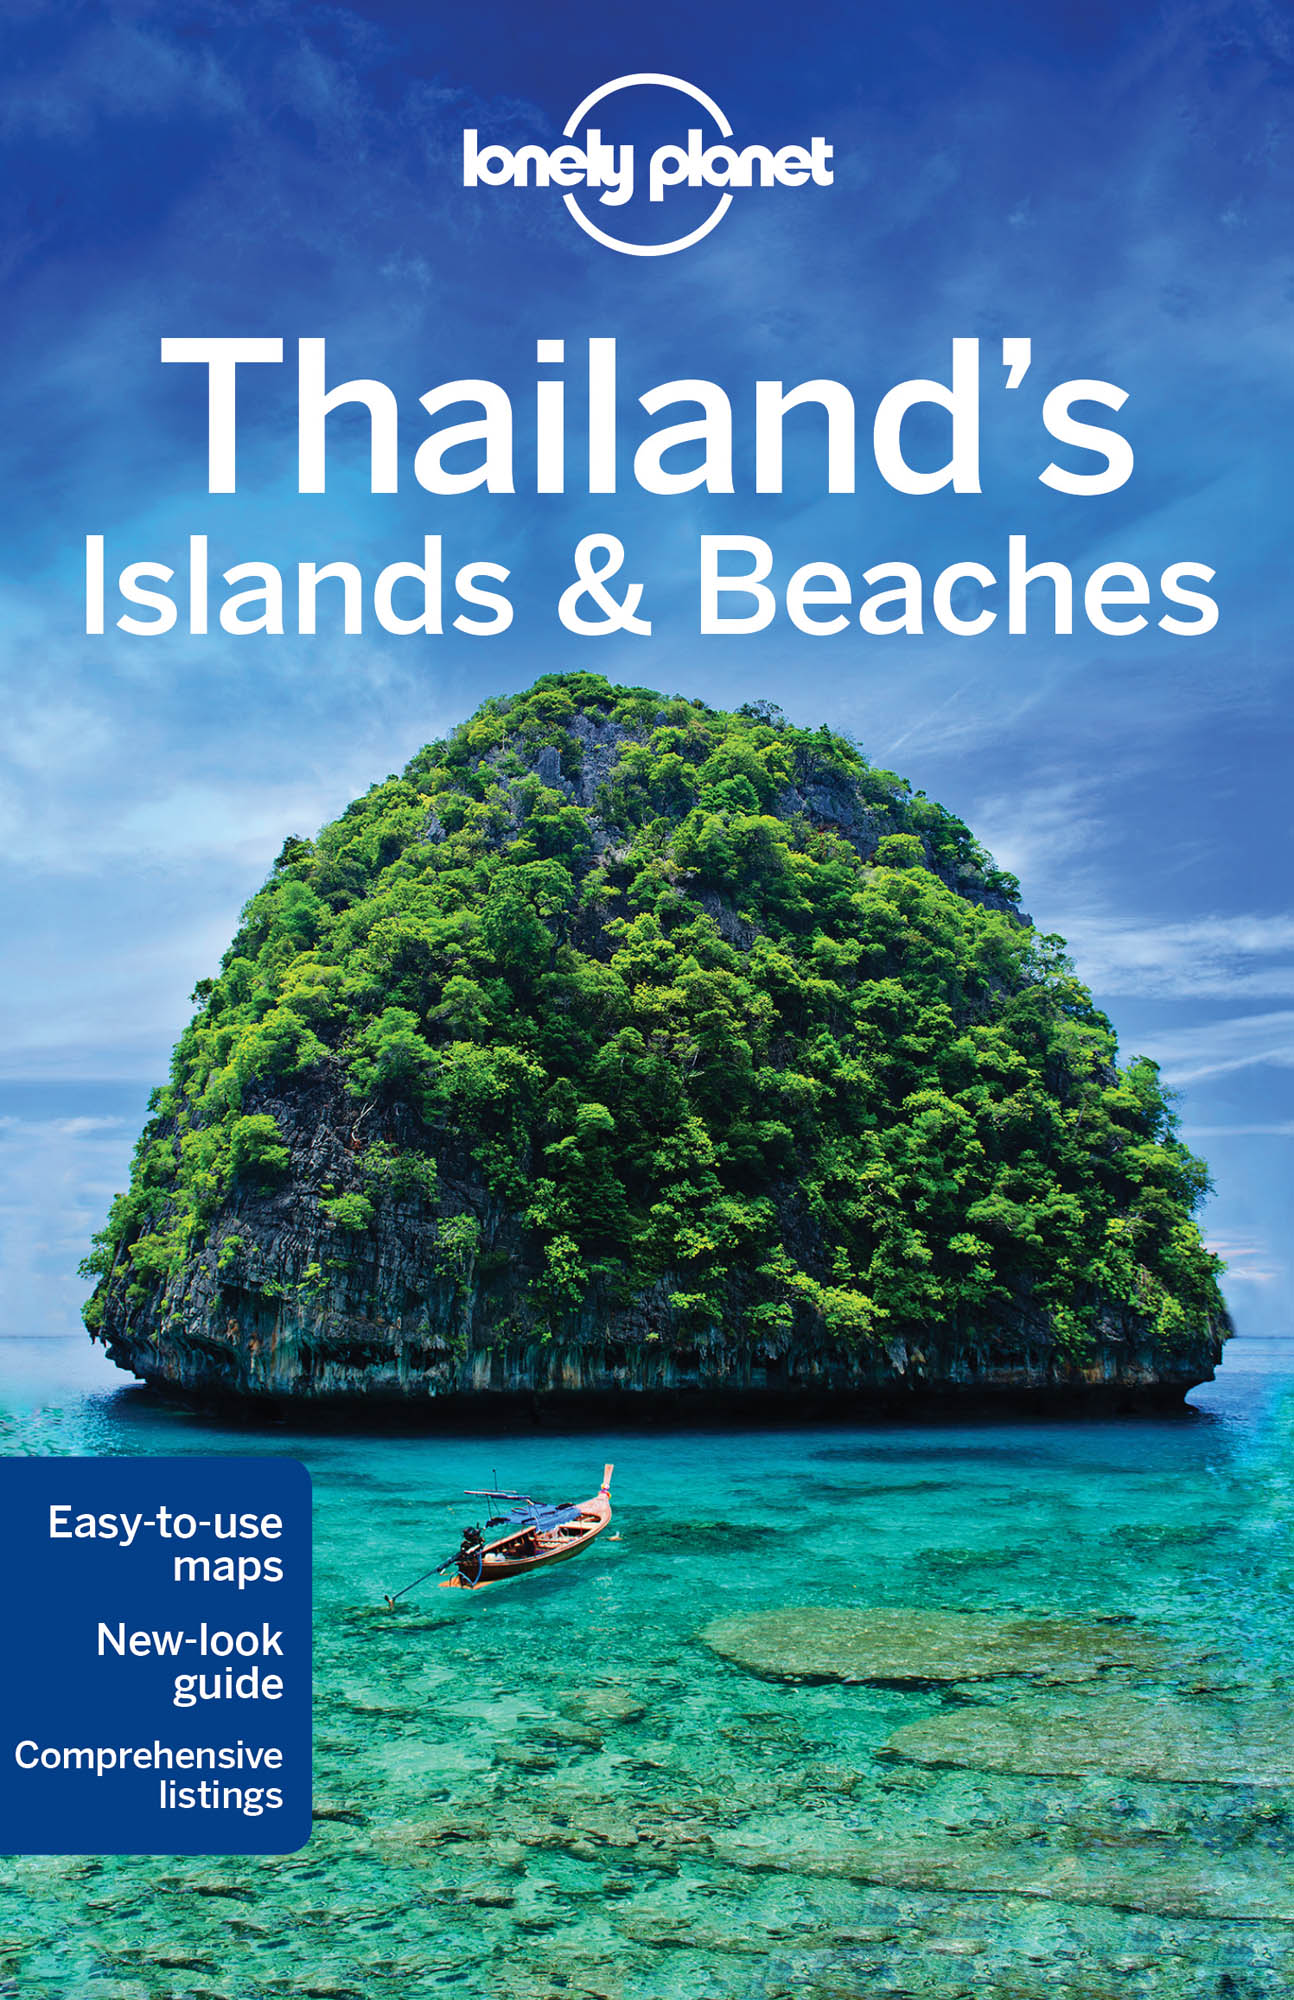 Ostrovy Thajska (Thailand´s Islands & Beaches) průvodce 10th 2016 Lonely Planet